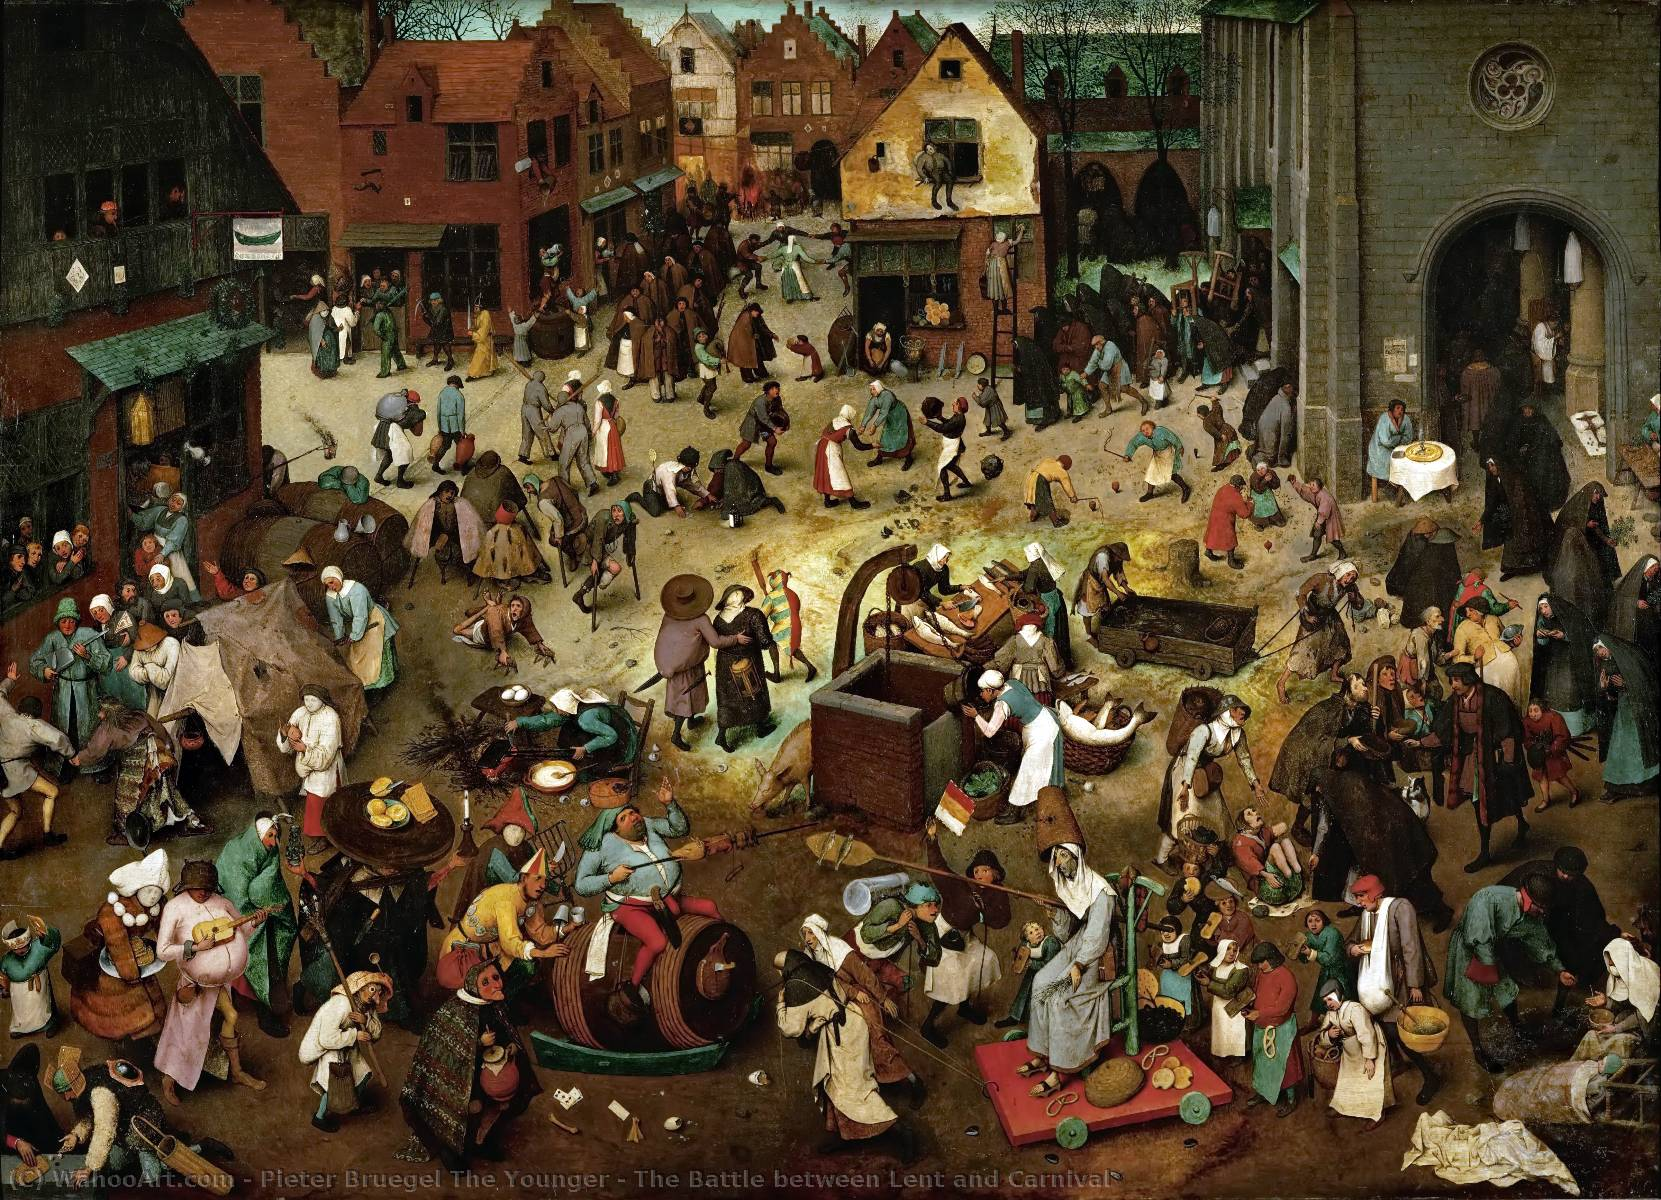 famous painting The Battle between Lent and Carnival of Pieter Bruegel The Younger